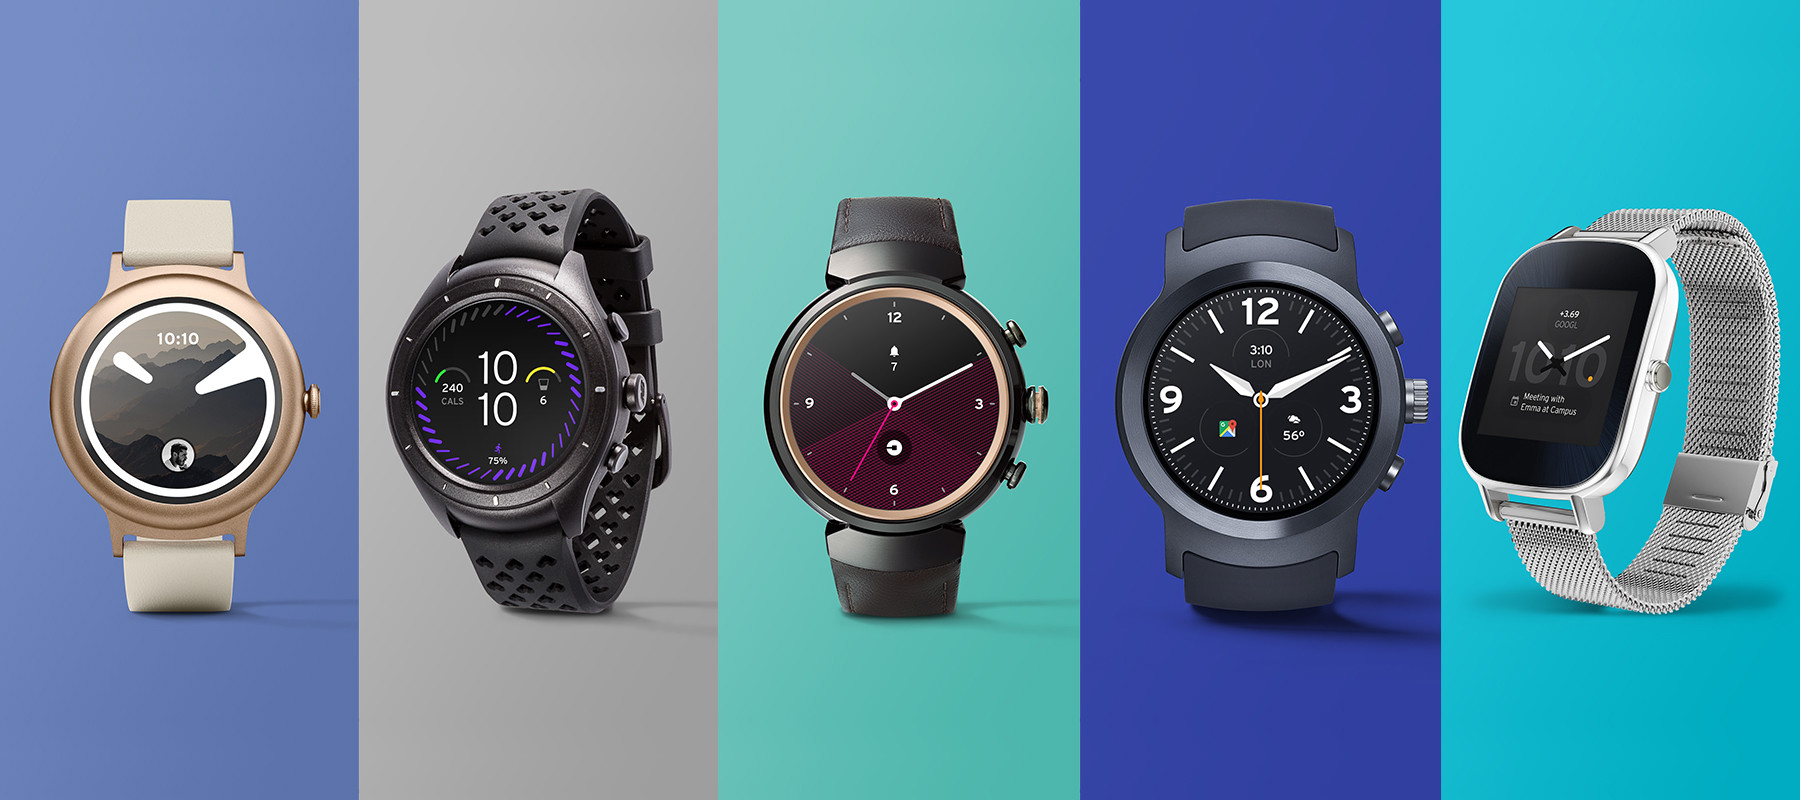 caseStudy-androidWear-02